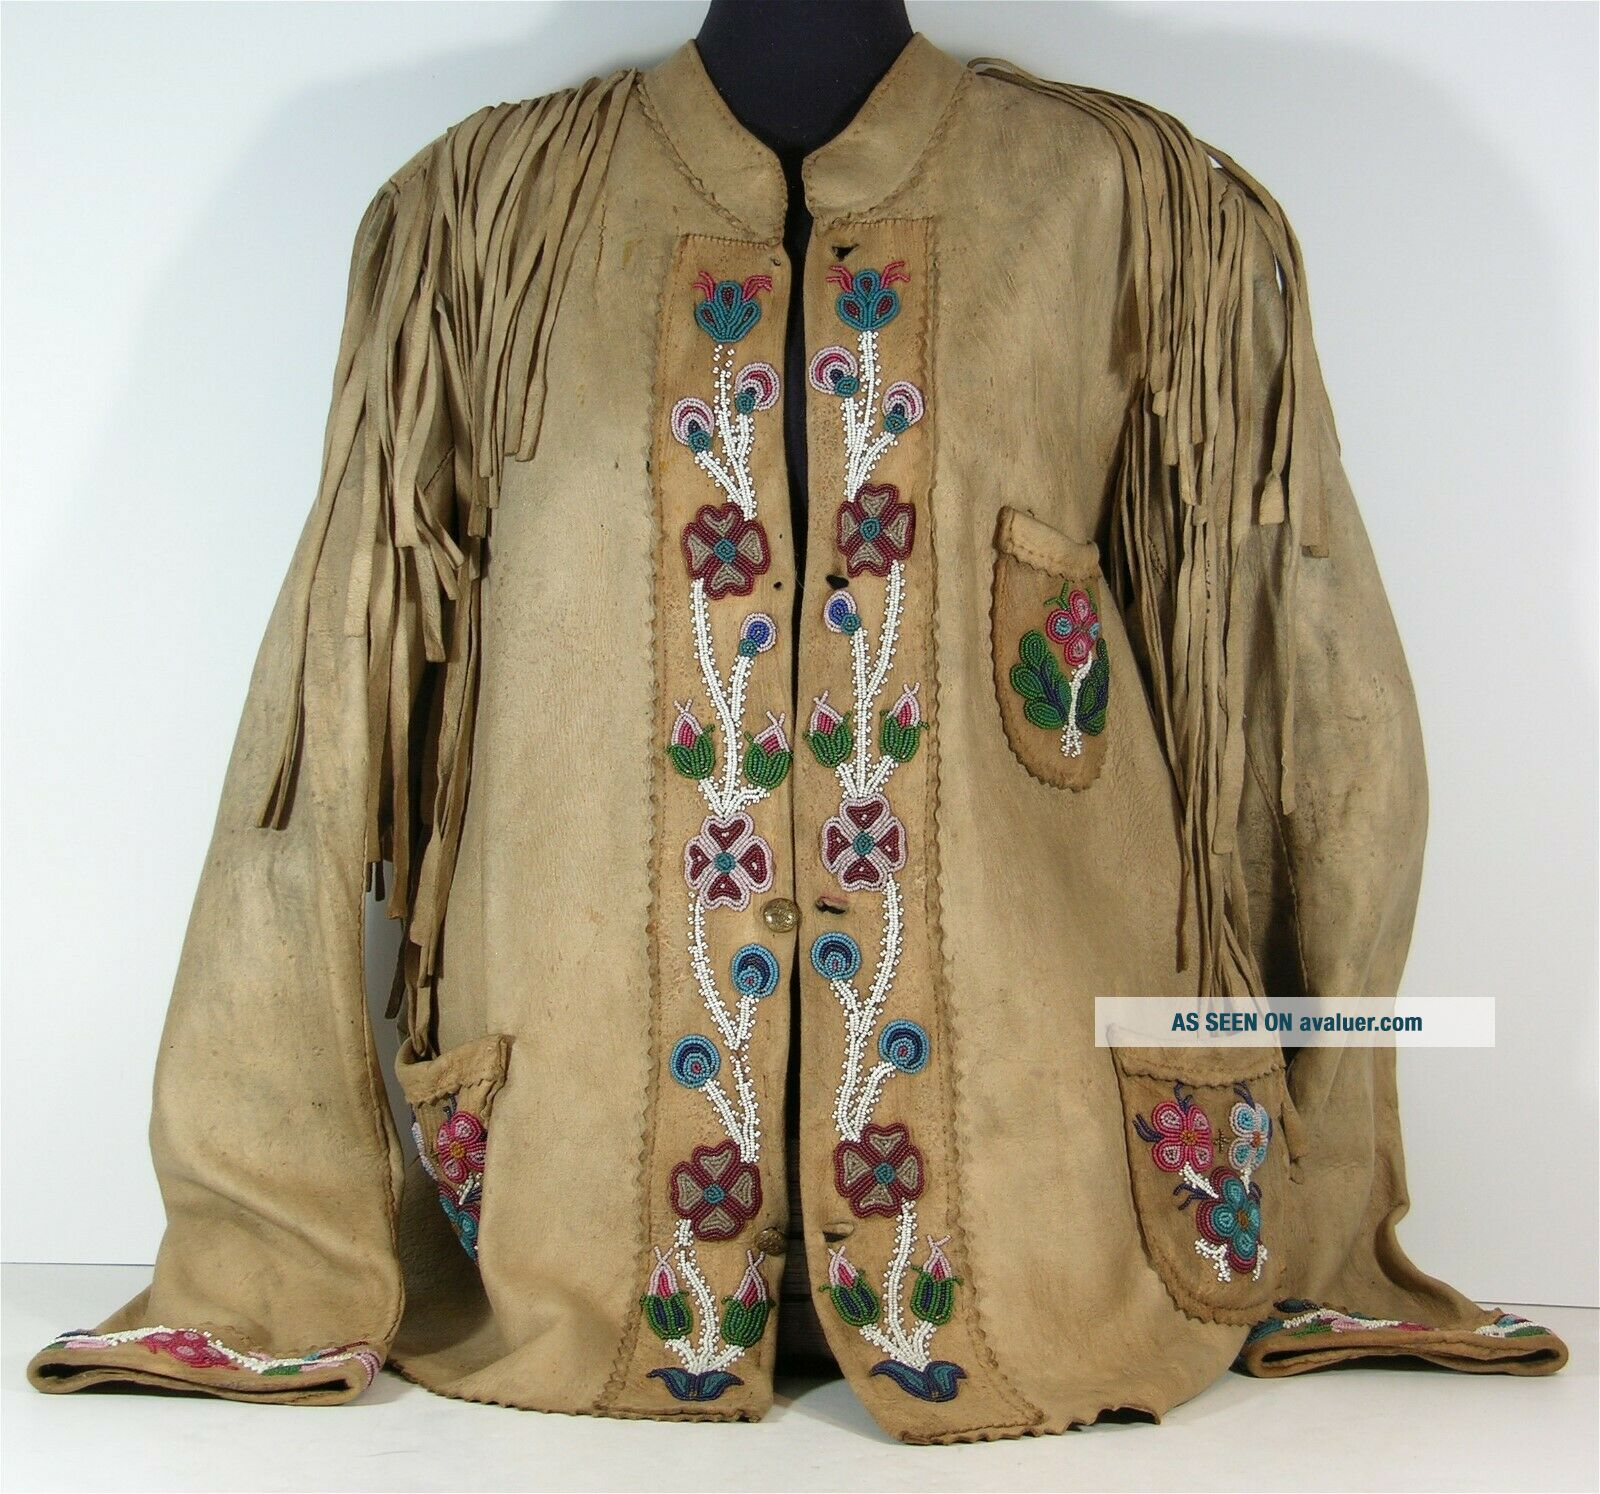 1890s NATIVE AMERICAN PLAINS CREE INDIAN BEAD DECORATED HIDE JACKET BEADED COAT